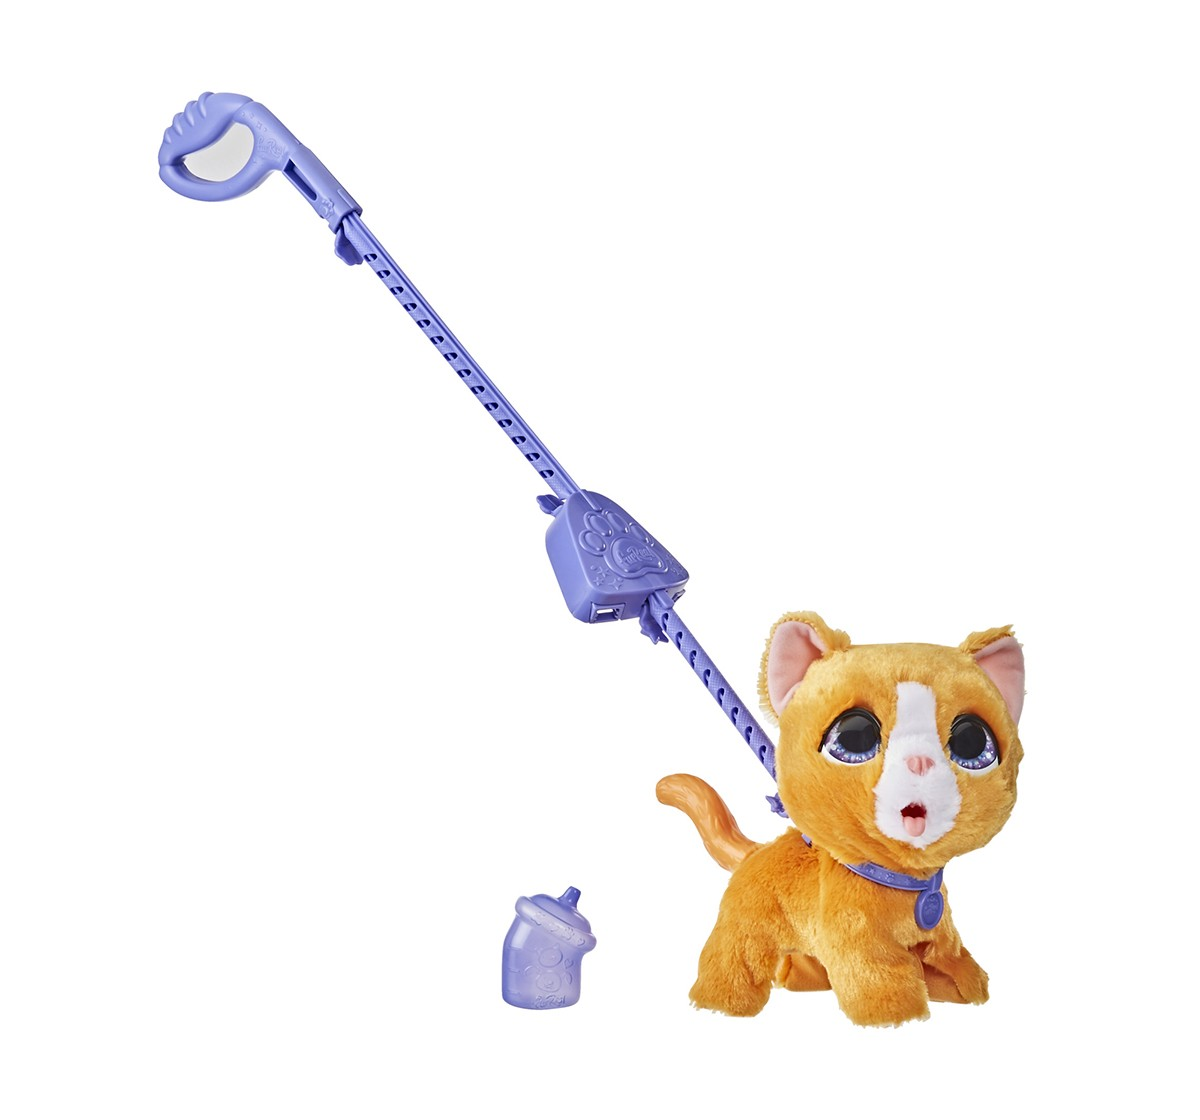 Furreal Friends Peealots Big Wags Kitty Interactive Pet Toy, Ages 4 and Up Interactive Soft Toys for GIRLS age 4Y+ - 22.86 Cm